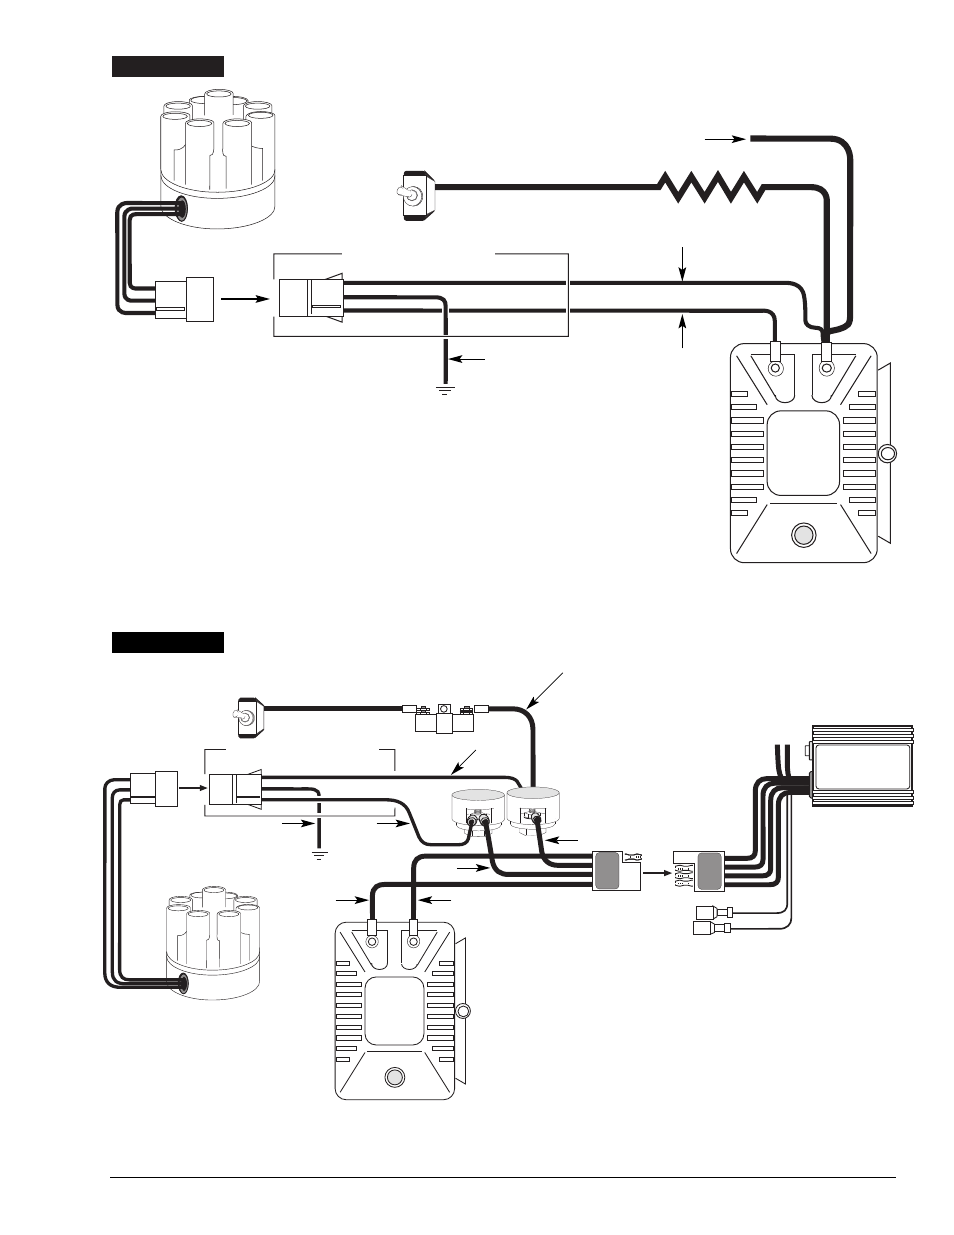 Coil Mallory Ignition Unilite Distributor User Manual Hp 600 Wiring Diagram Page 3 13